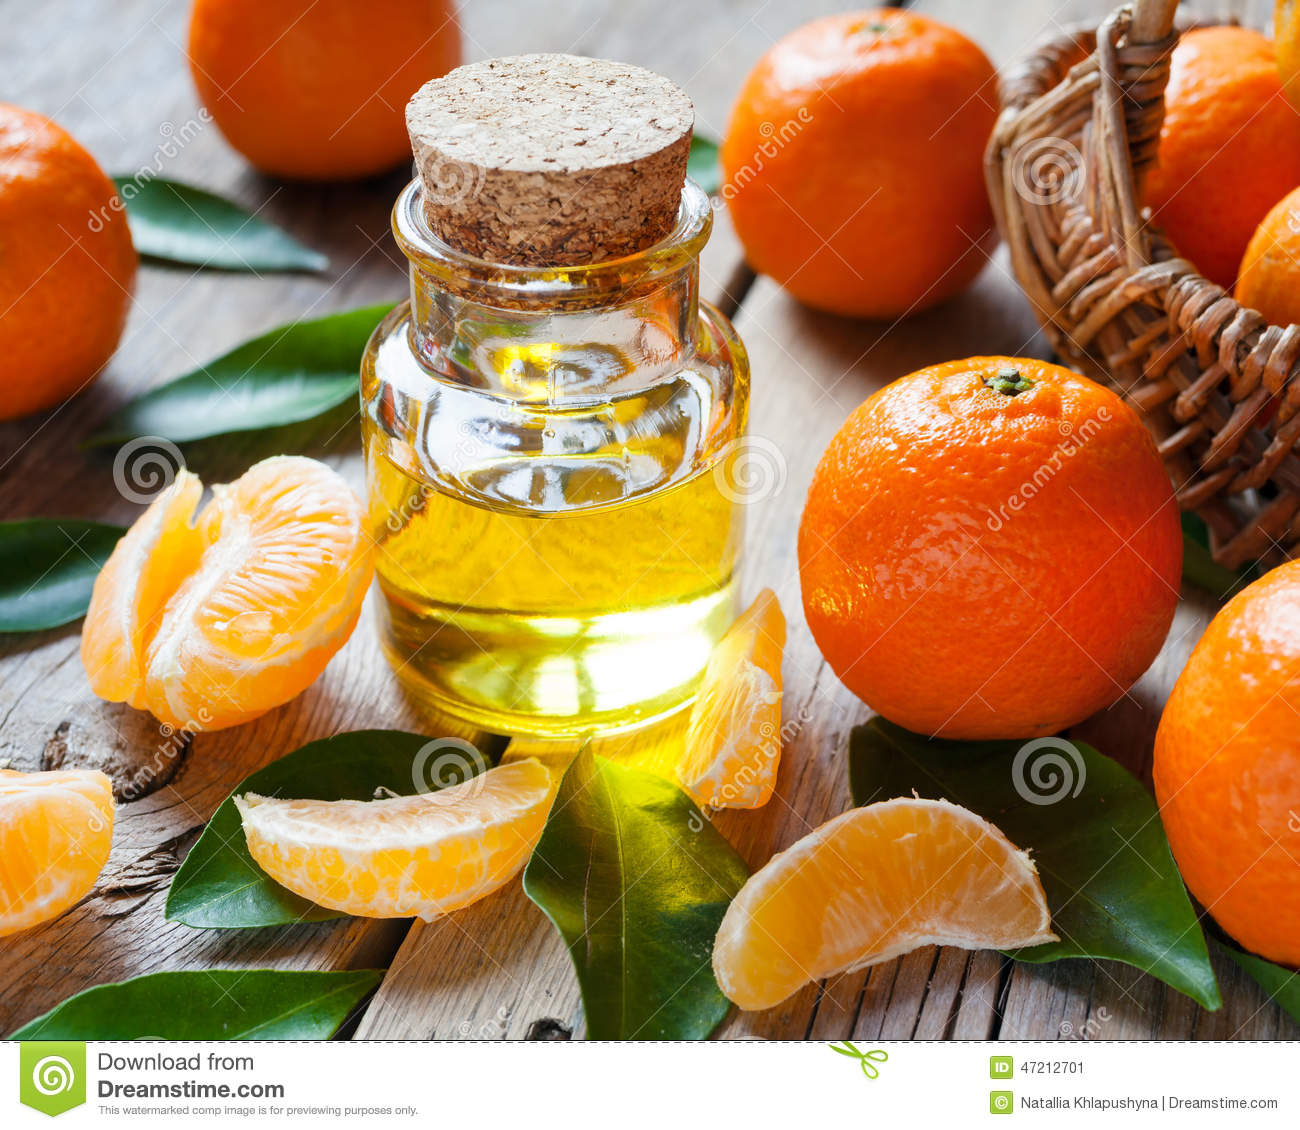 Bottle of essential citrus oil and ripe tangerines with leaves